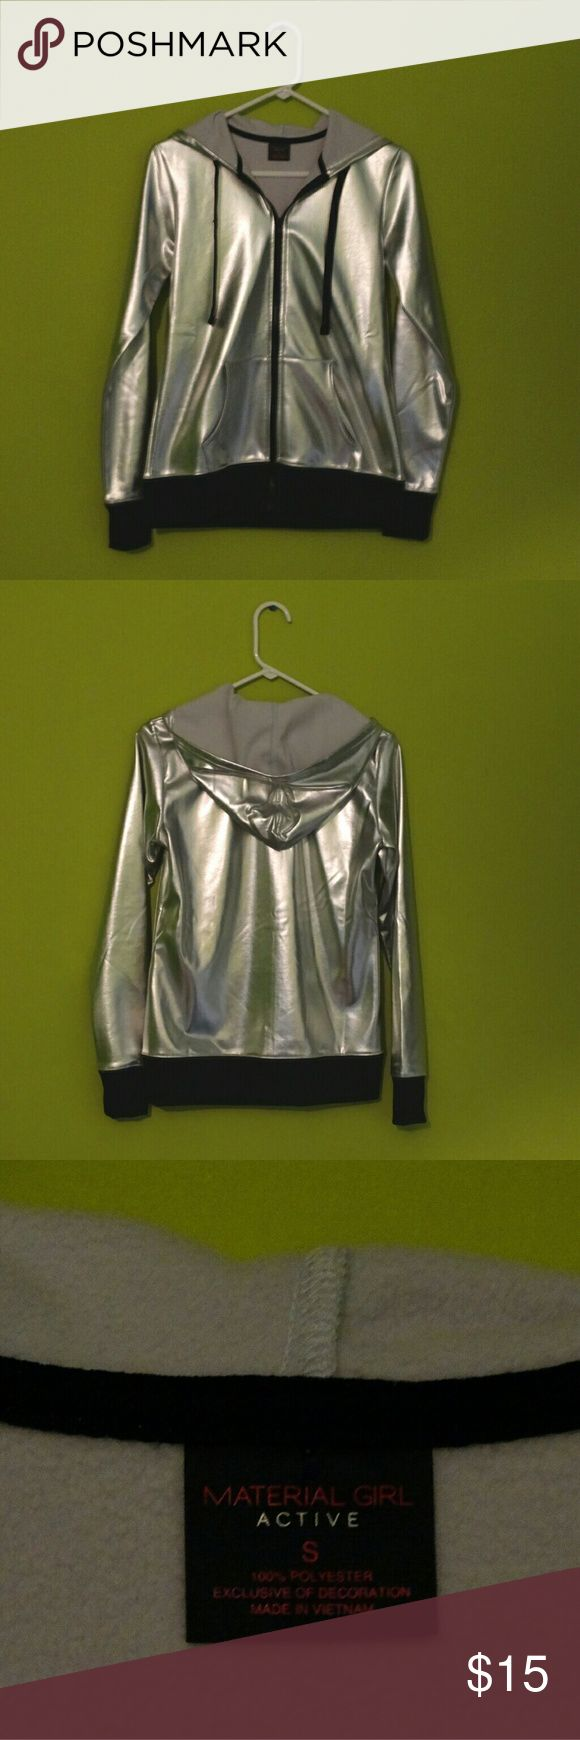 Metallic hoodie Only worn once Material Girl Tops Sweatshirts & Hoodies